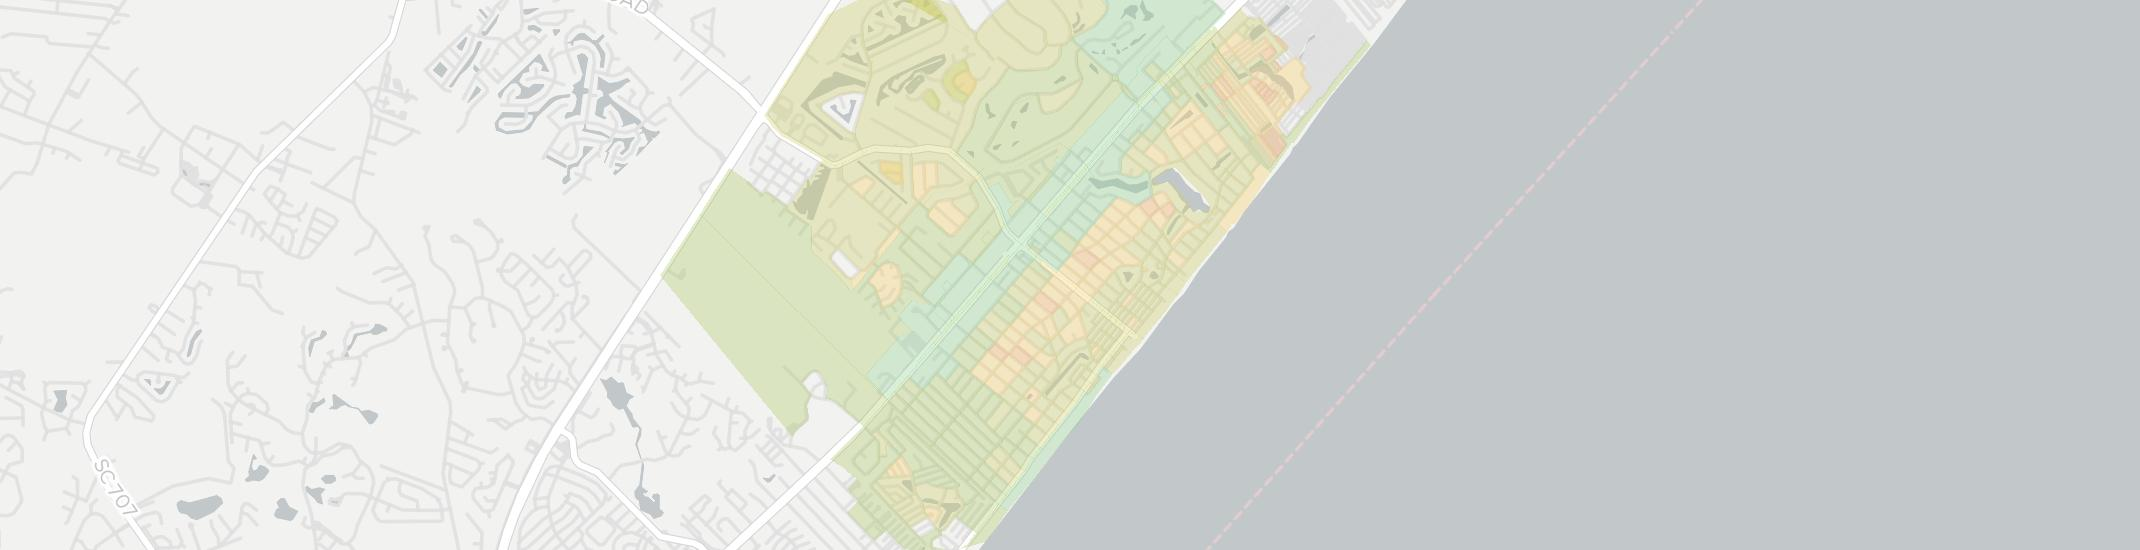 Surfside Beach Internet Competition Map. Click for interactive map.